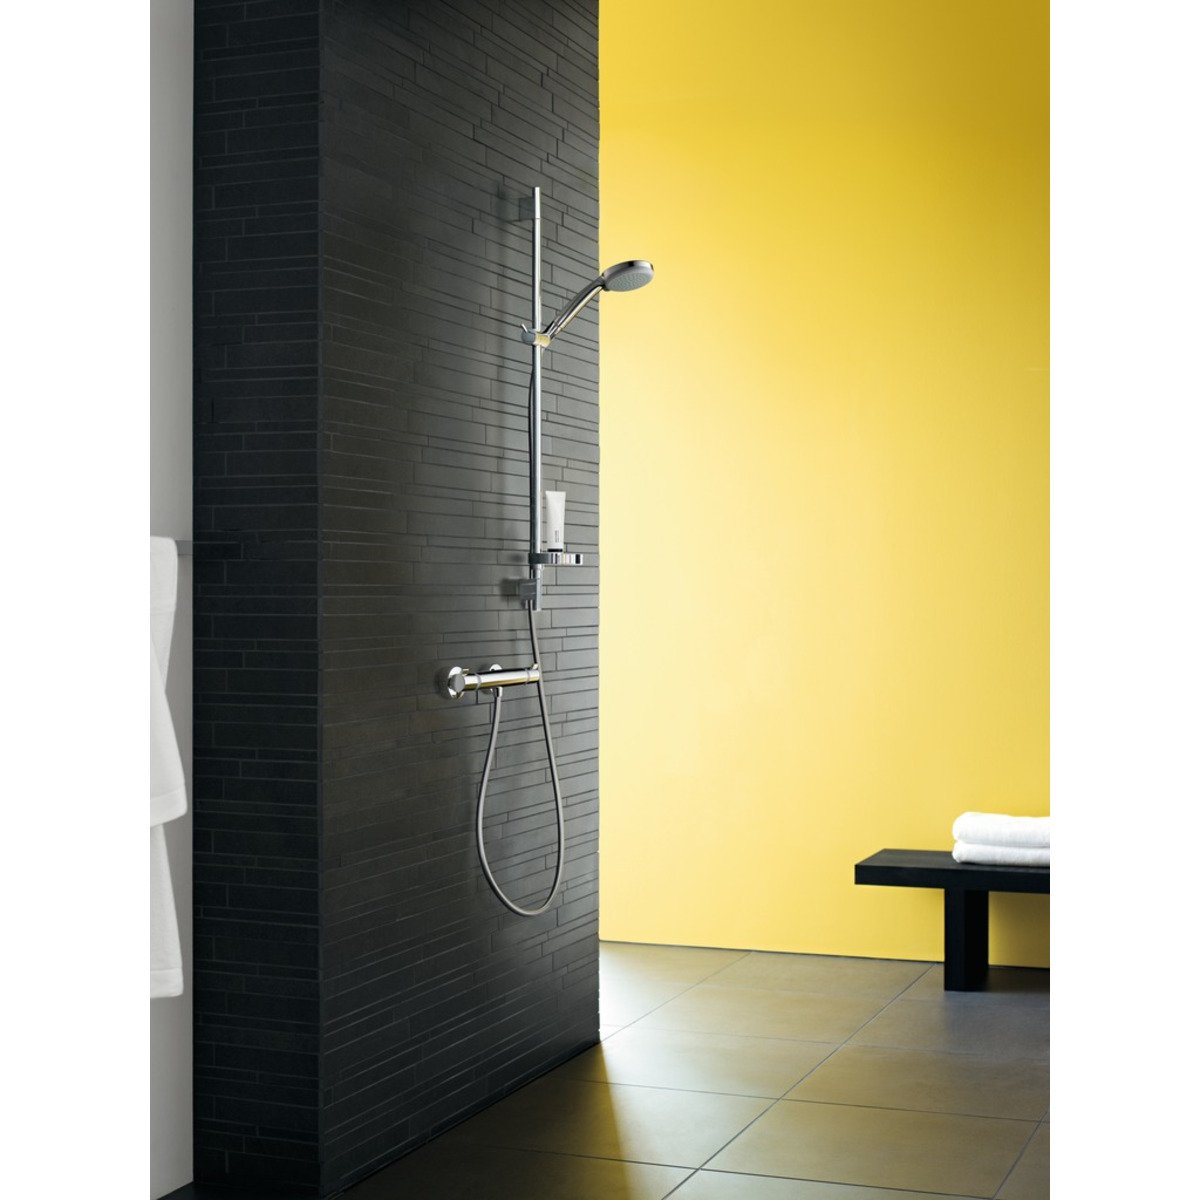 hansgrohe ecostat comfort mitigeur thermostatique douche chrom 13116000. Black Bedroom Furniture Sets. Home Design Ideas